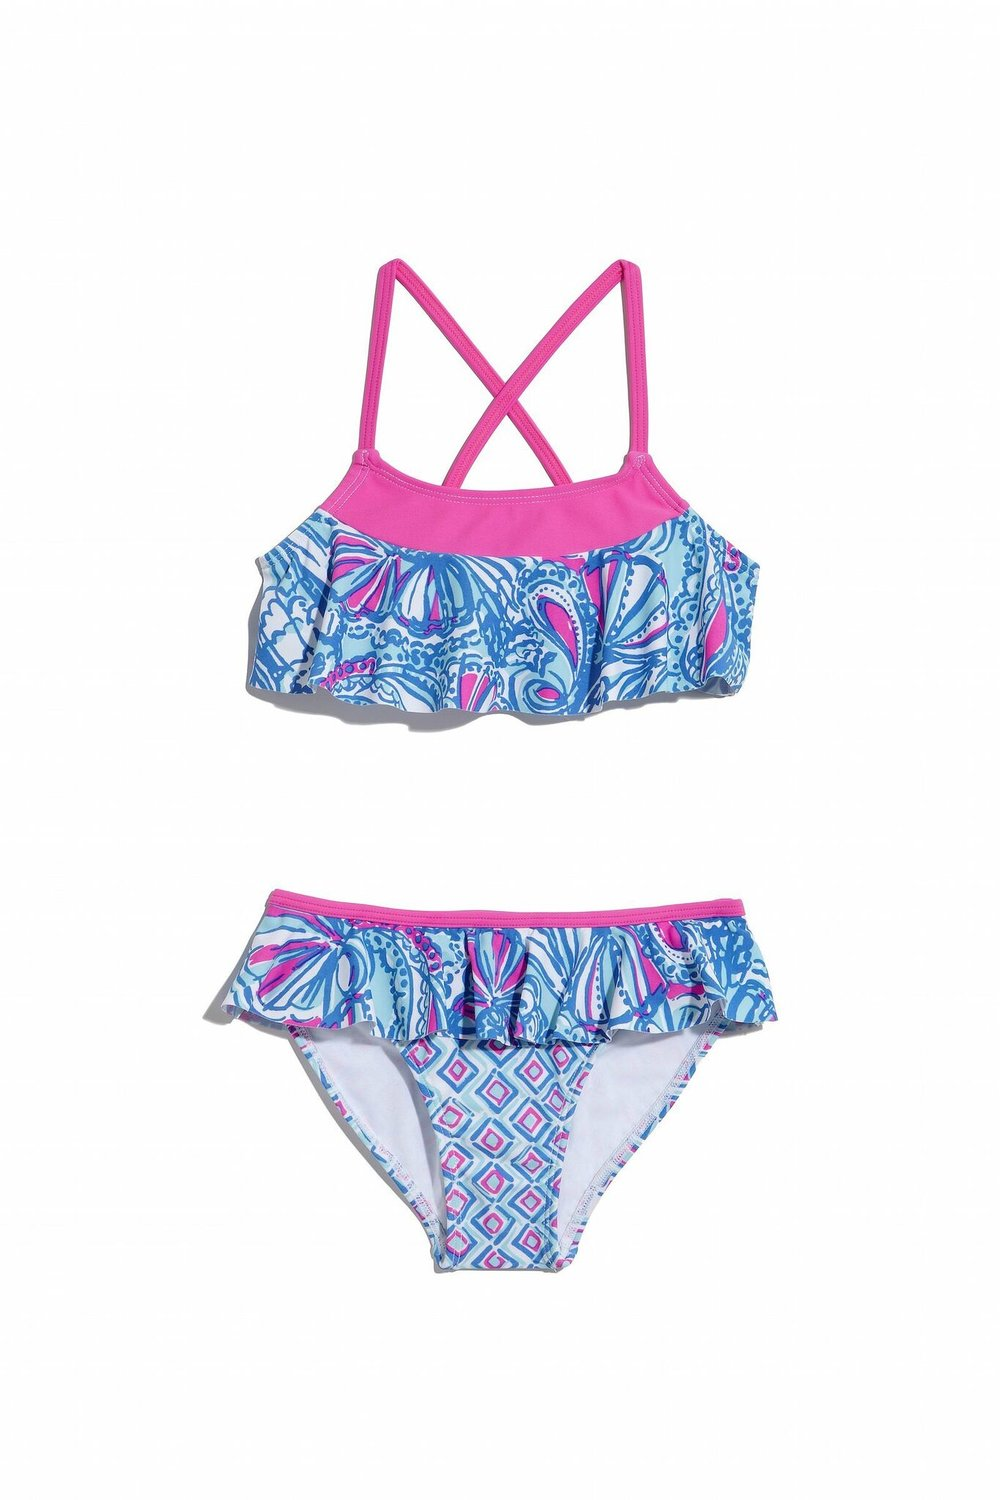 TARGETxLILLY GIRLS SWIMSUIT